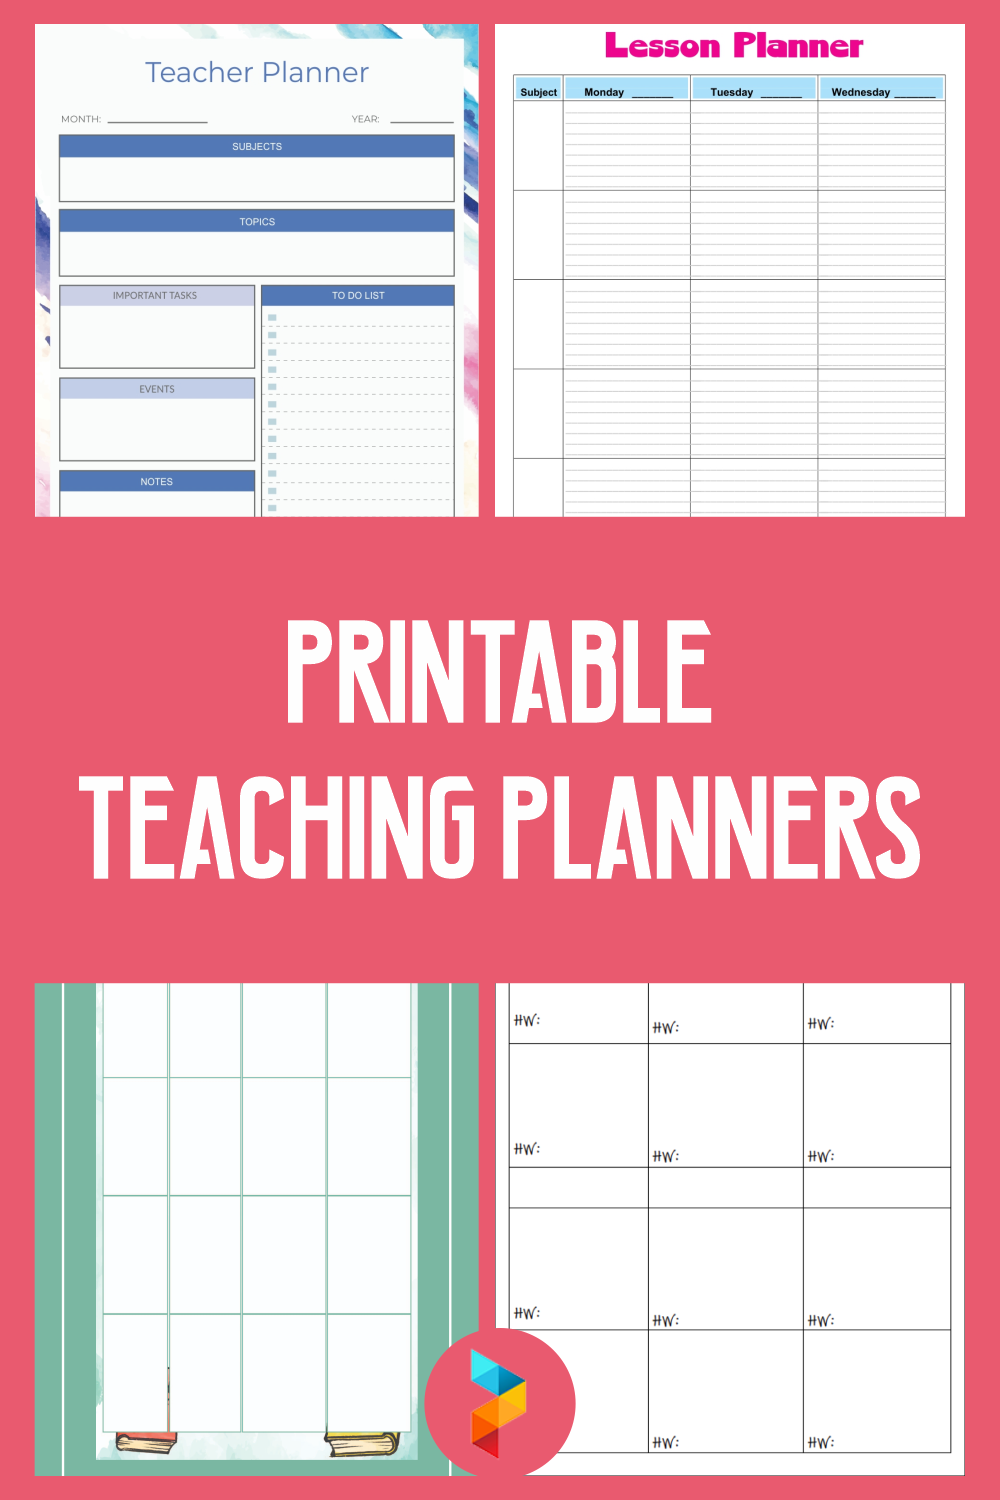 Printable Teaching Planners